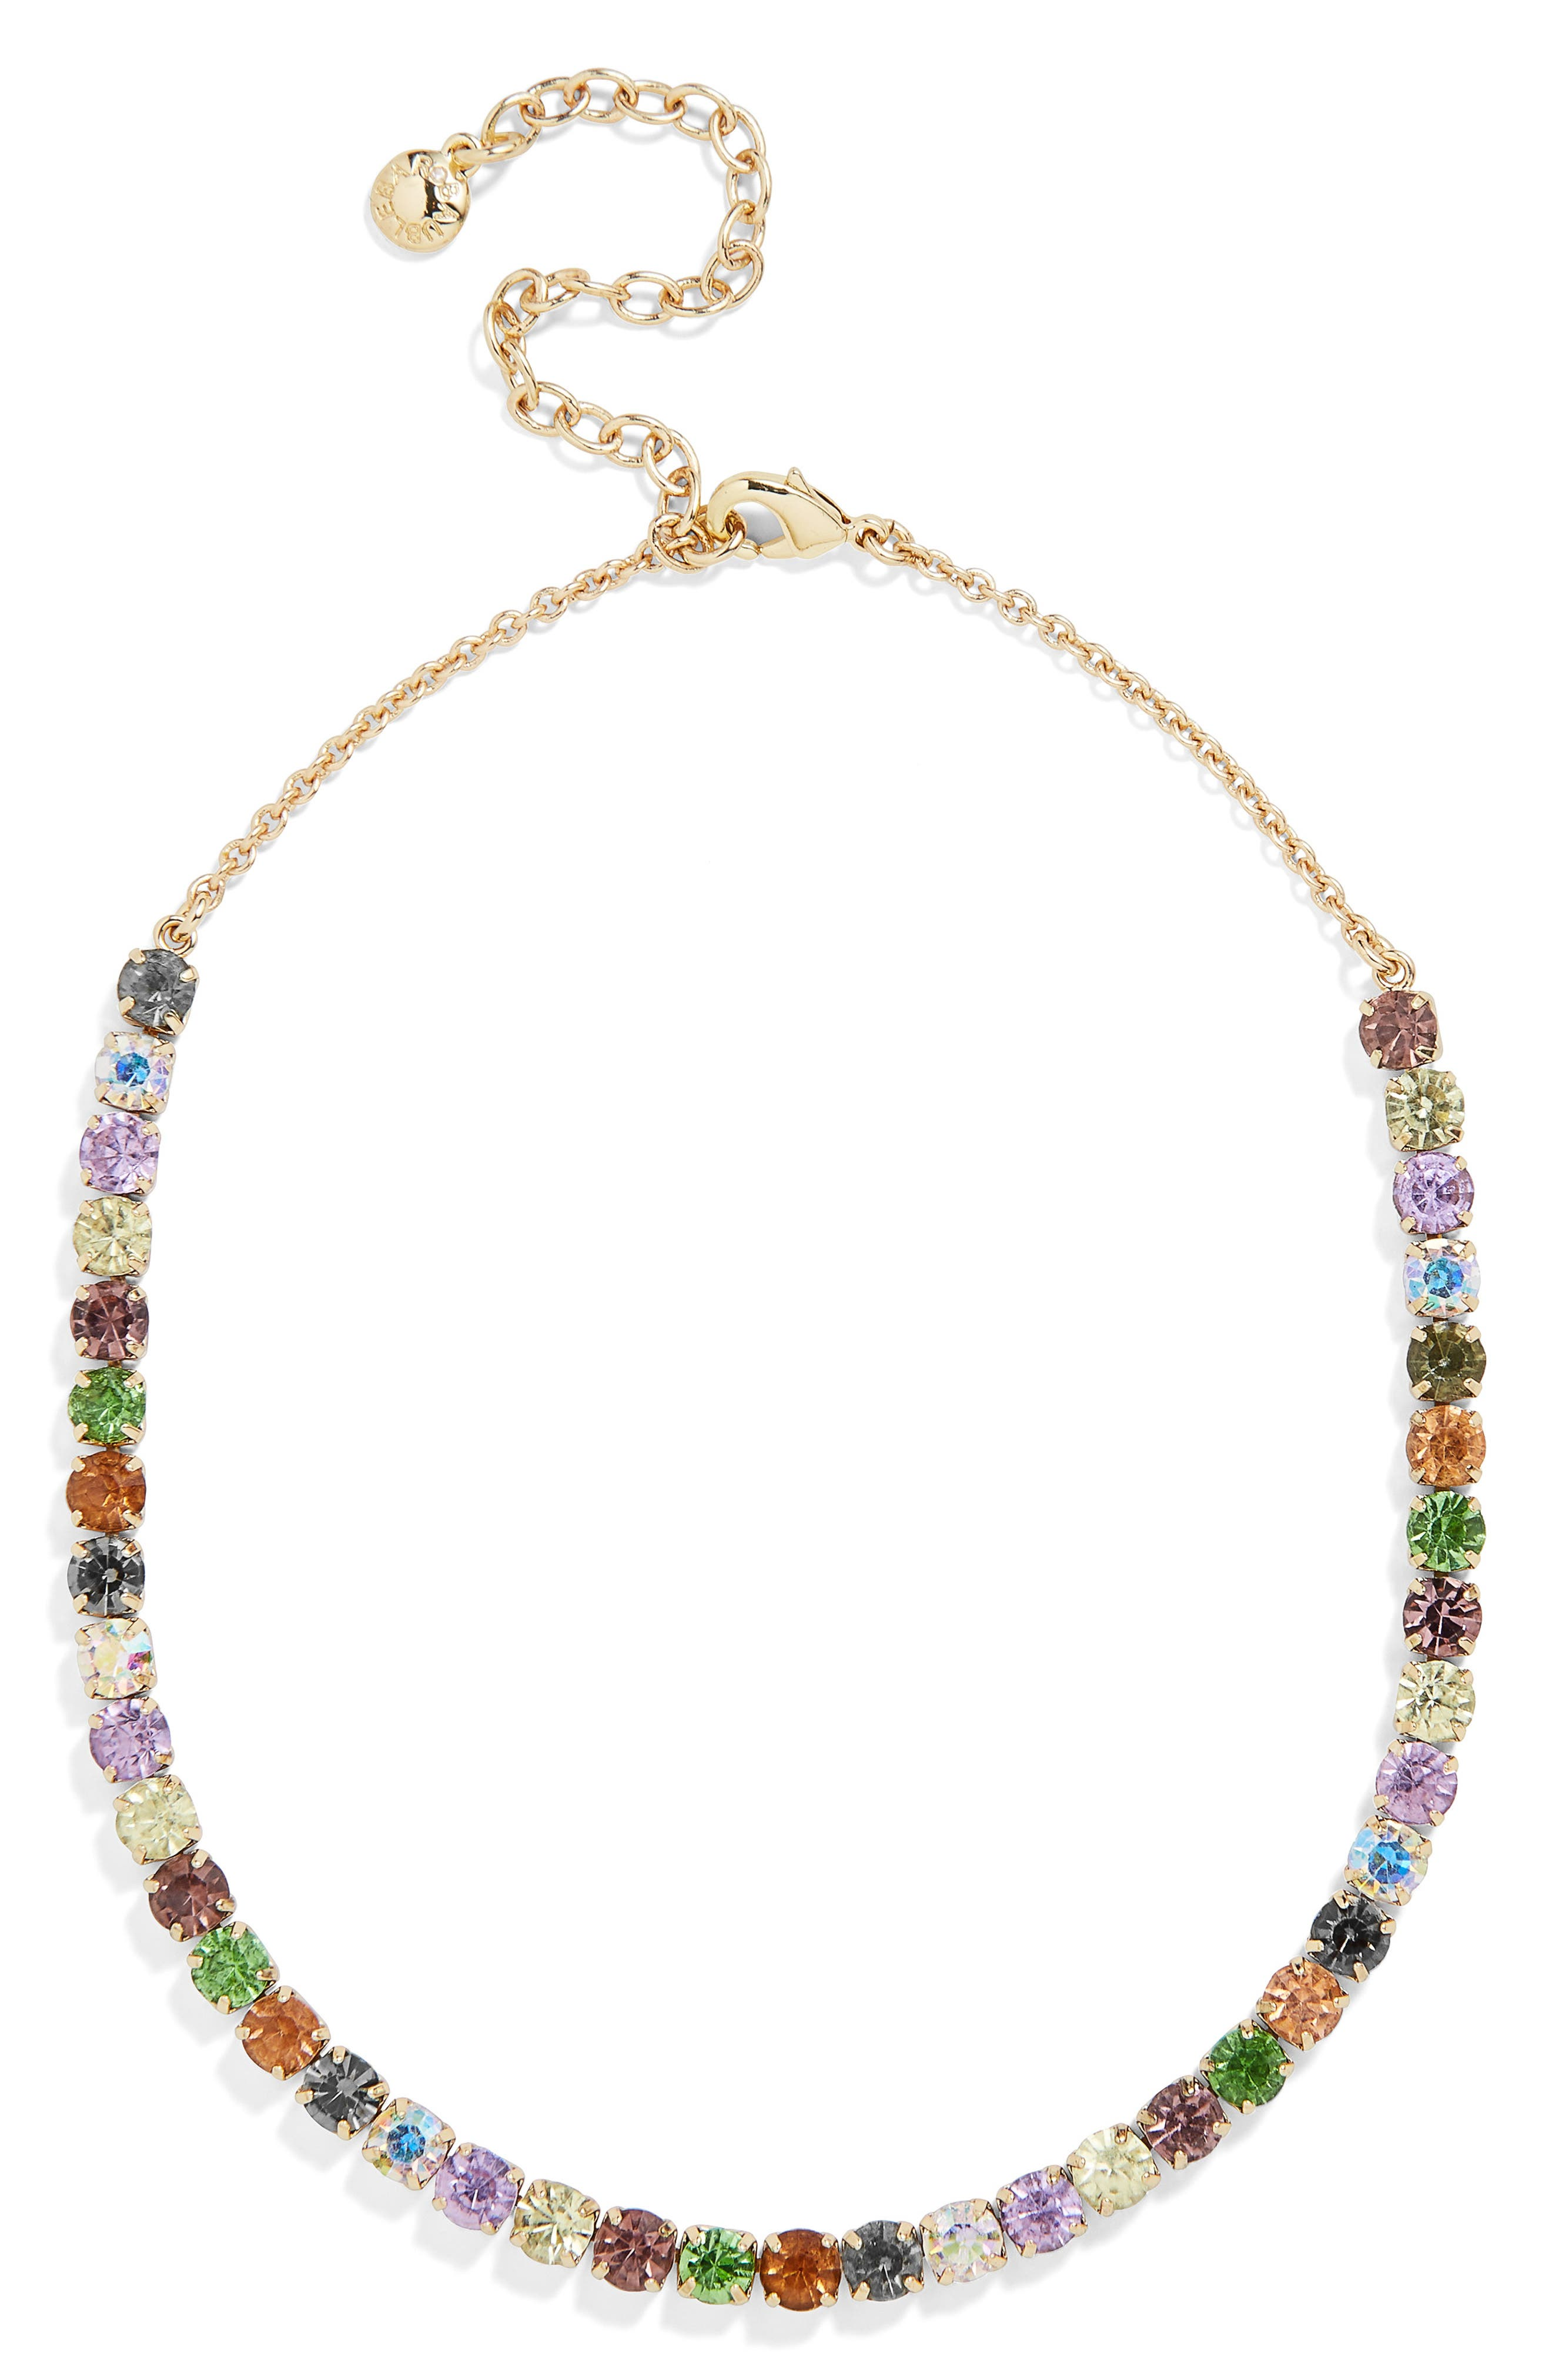 x Micaela Erlanger Walk in the Park Choker Necklace,                             Main thumbnail 1, color,                             GREY MULTI/ GOLD